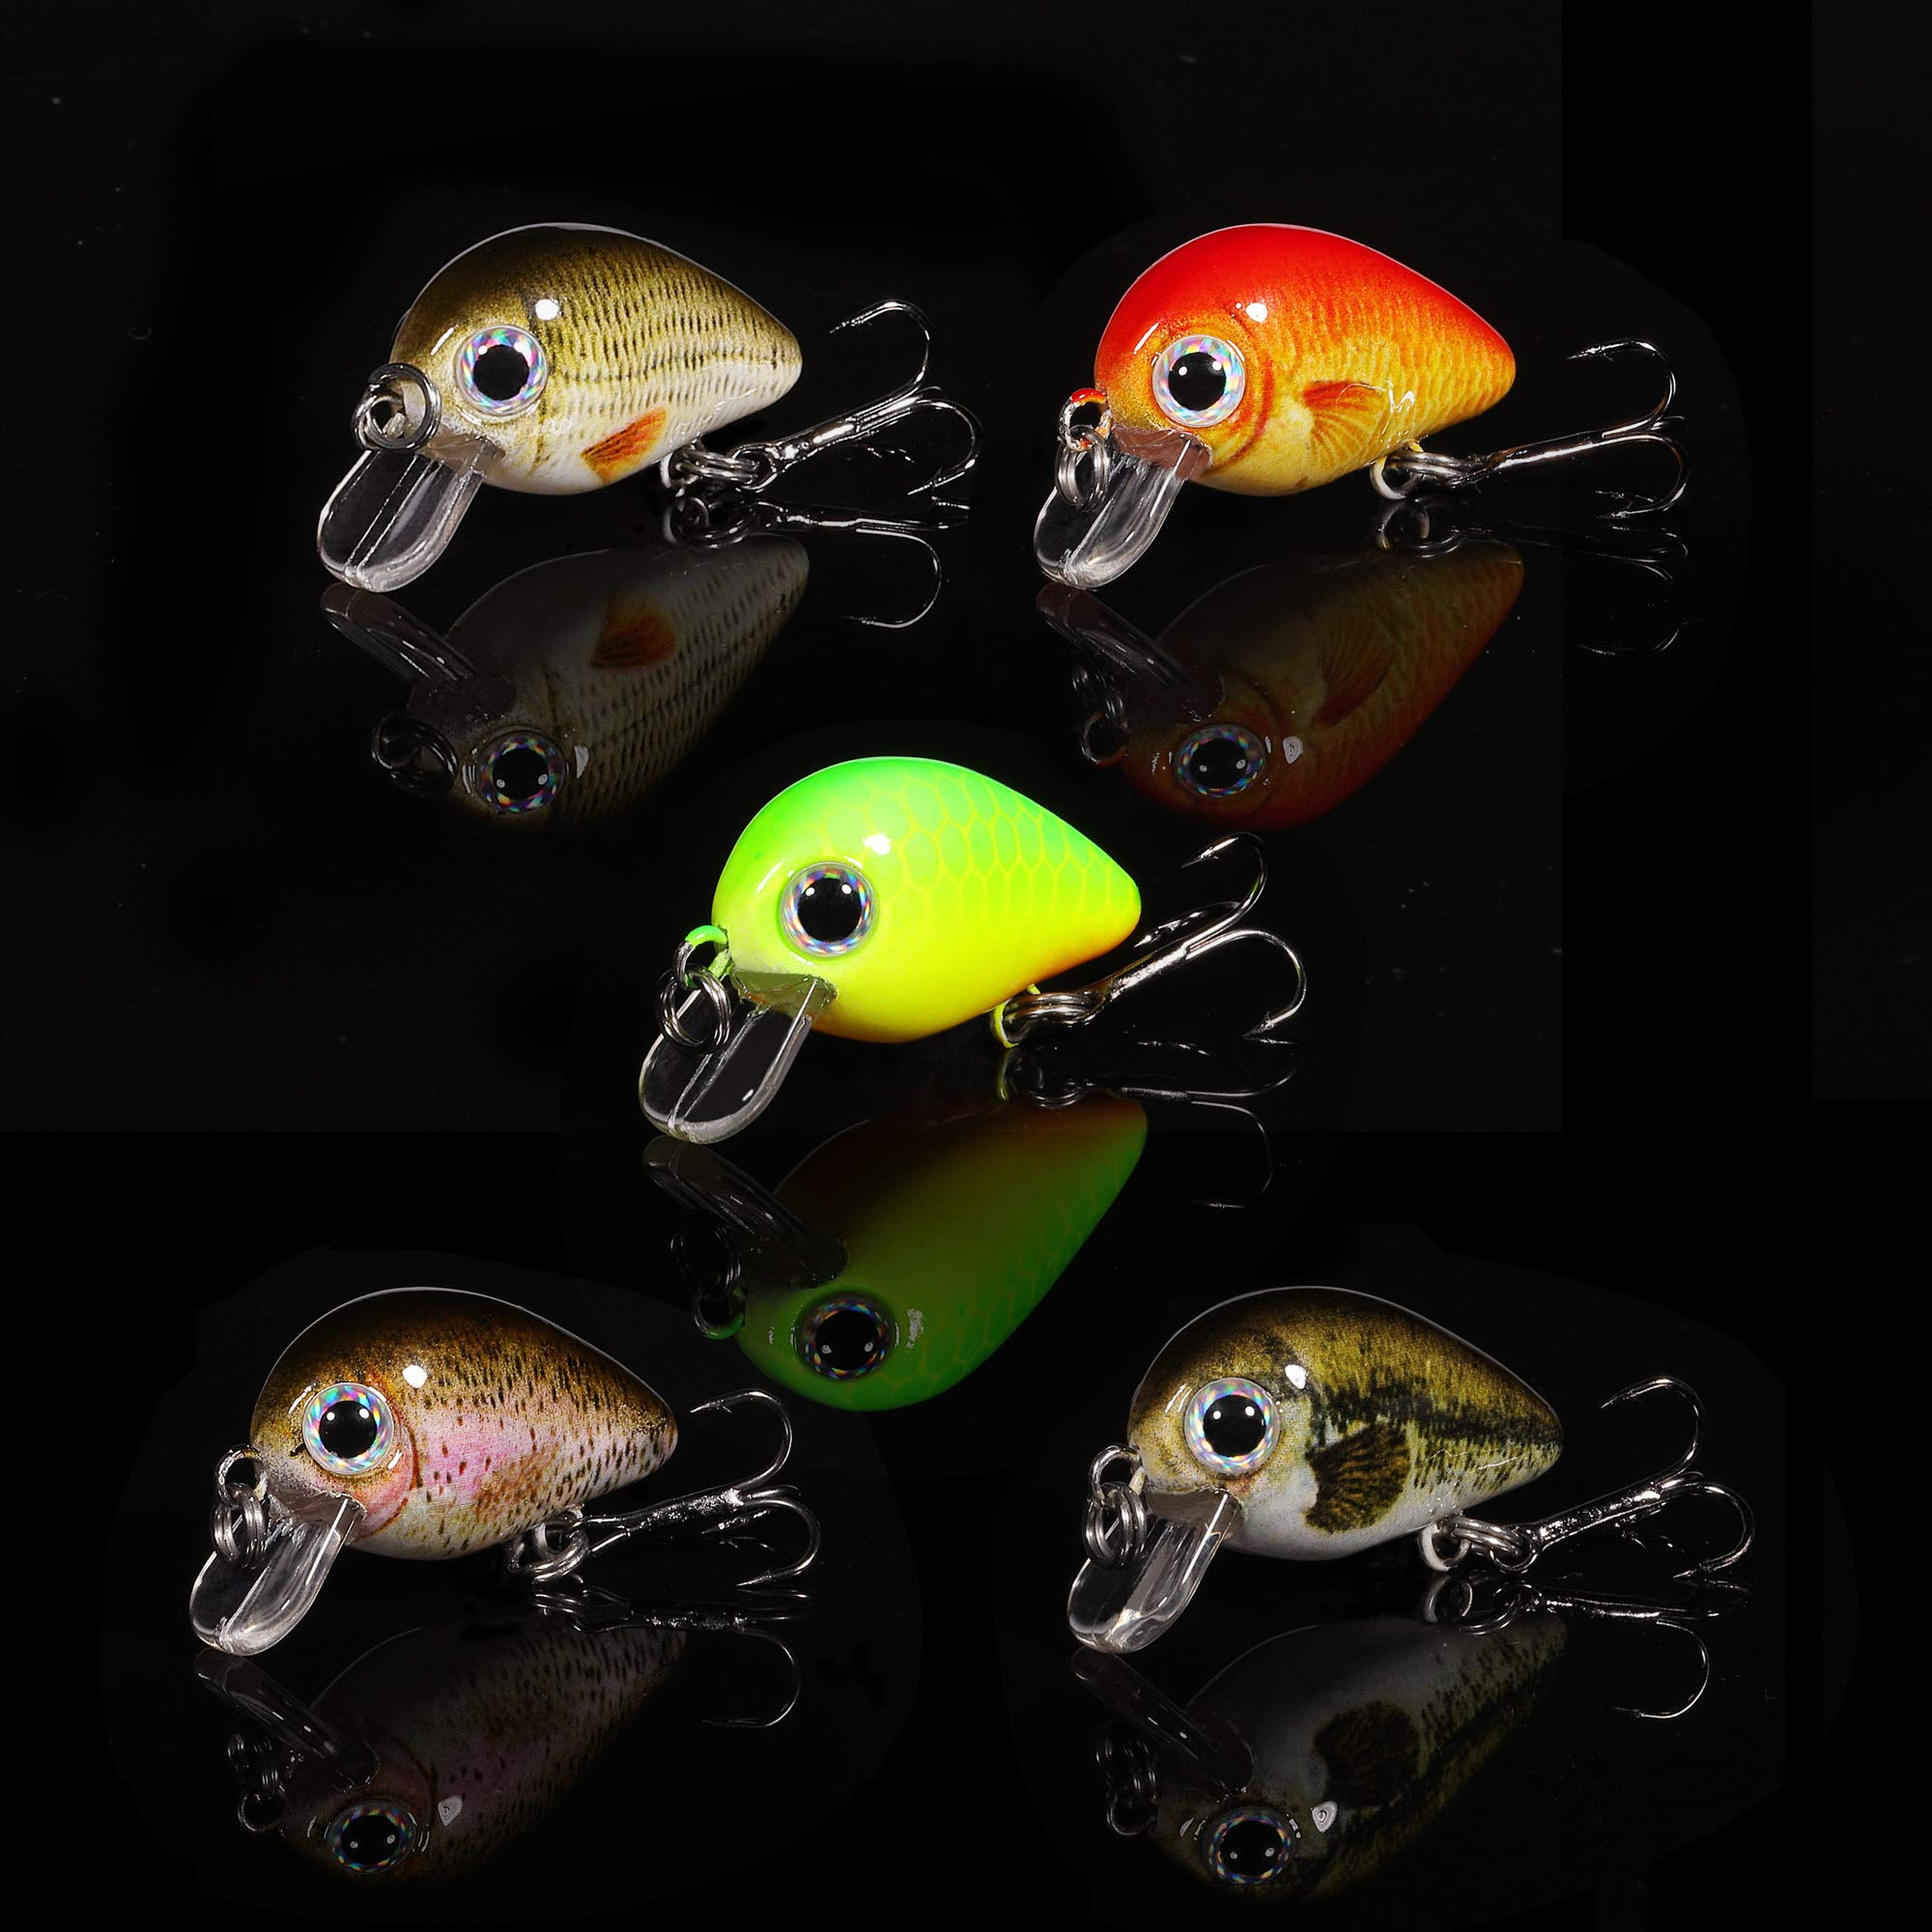 TRUSCEND Fishing Lures Set 5PCS Topwater Diving Swimbait Crankbait Fishing Wobble Multi Jointed Hard Baits for Bass Trout Freshwater and Saltwater